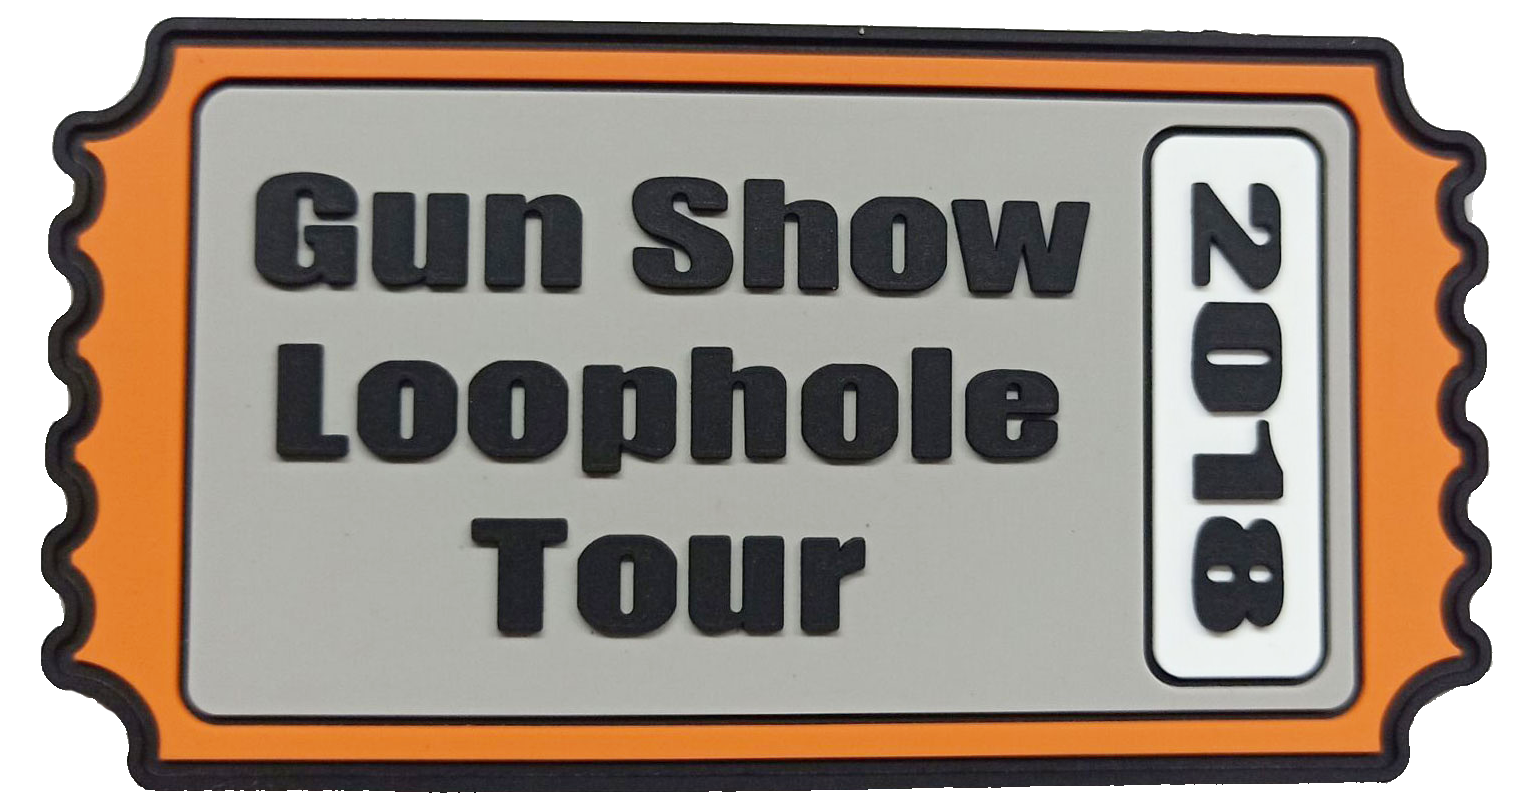 2018 Loophole Tour Ticket